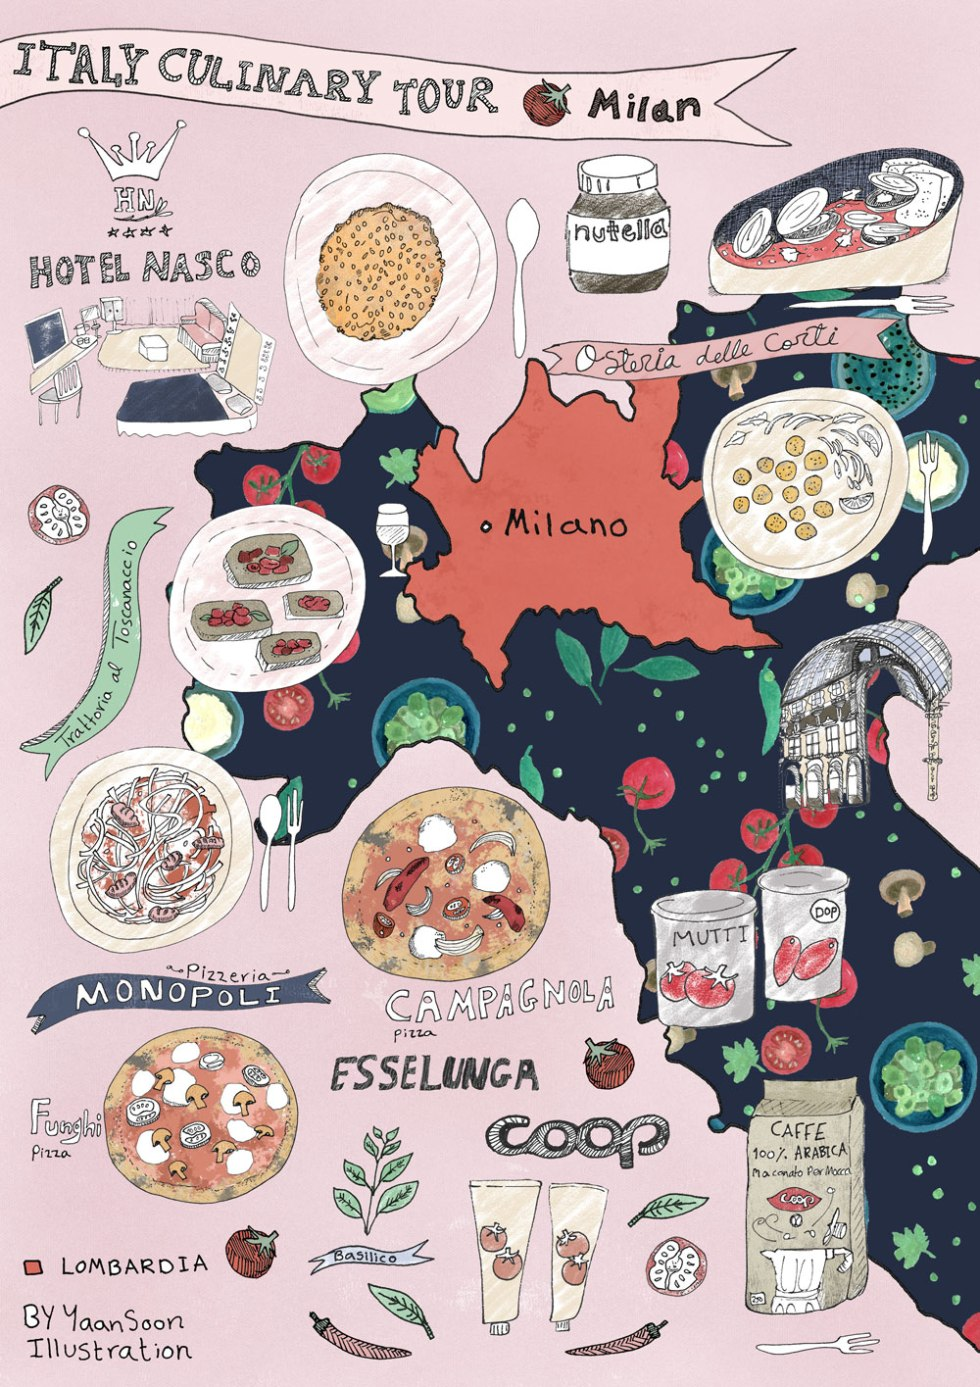 Italy culinary tour milan illustrated food map yaansoon italy culinary tour milan illustrated food map gumiabroncs Image collections